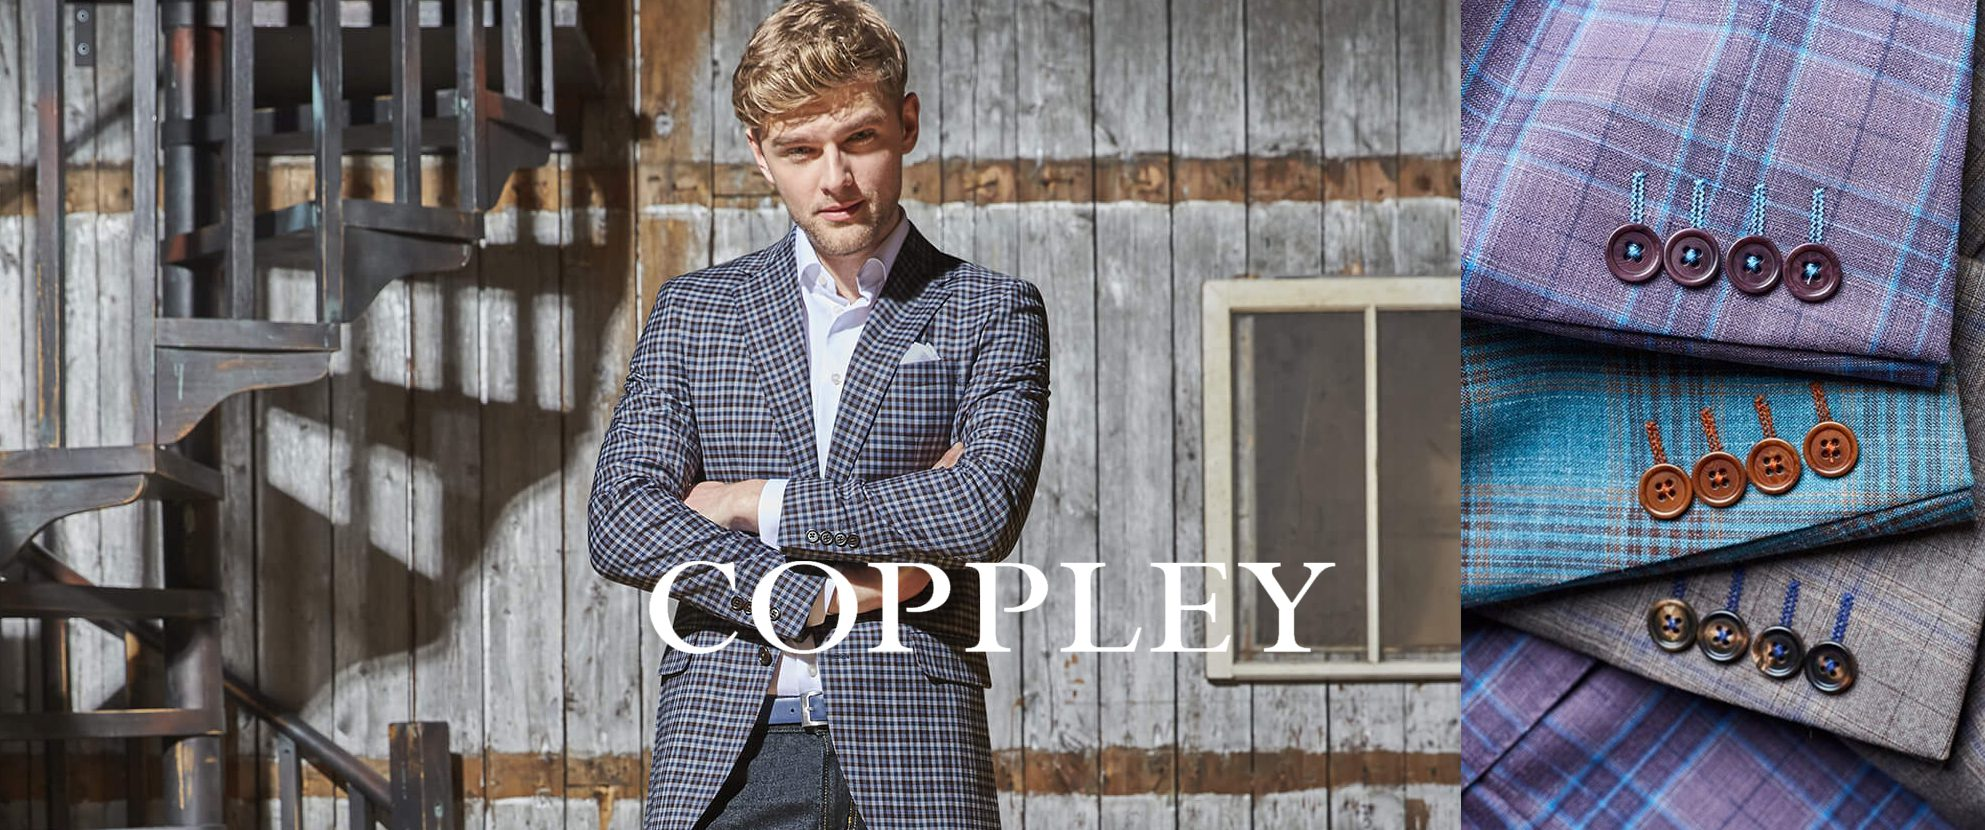 Don Alans Menswear - Pensacola: Coppley Suits